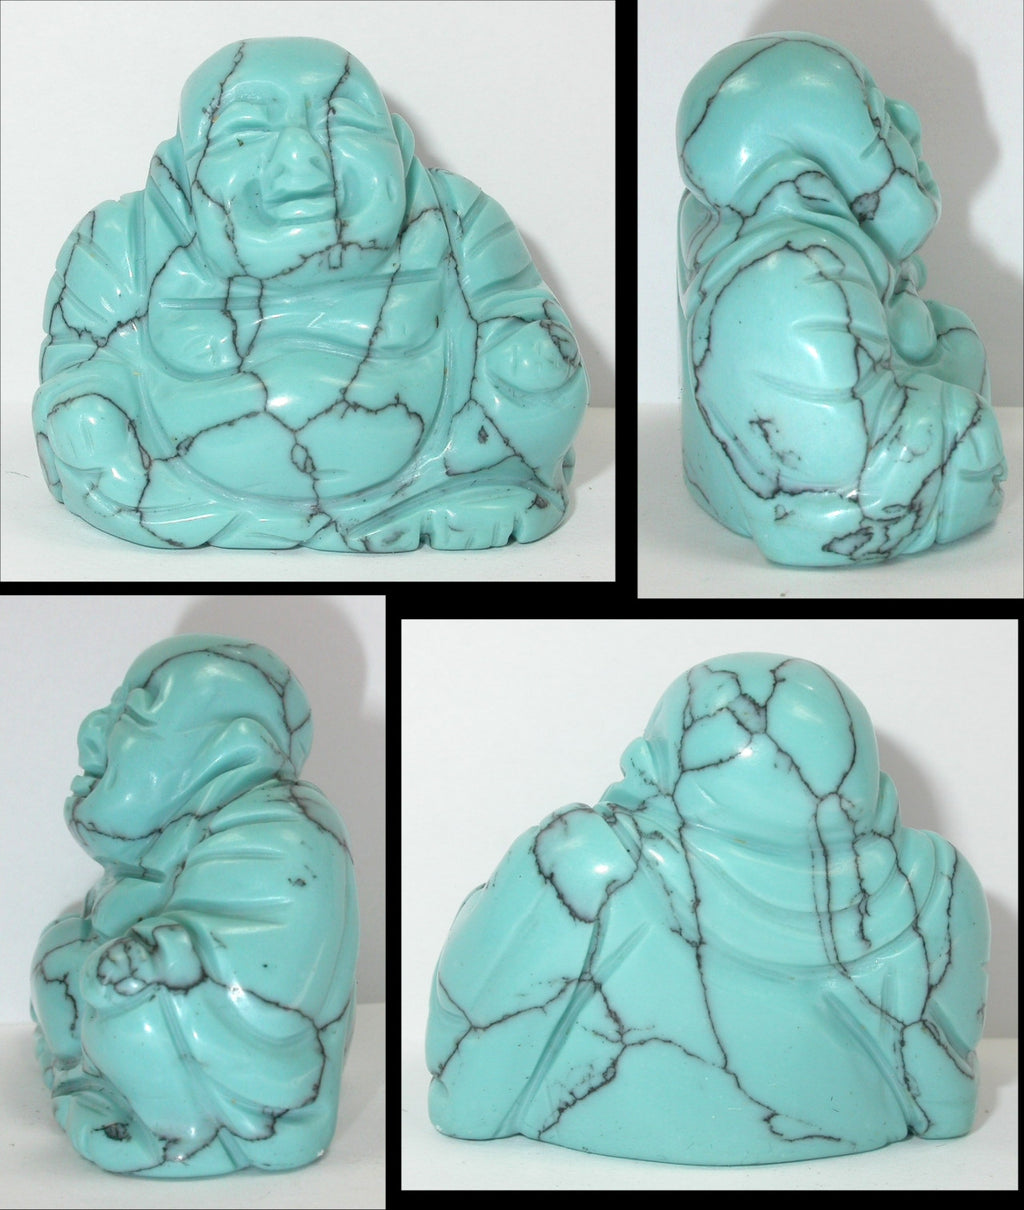 Turquoise Howlite LAUGHING BUDDHA Figure - Calm Communication!